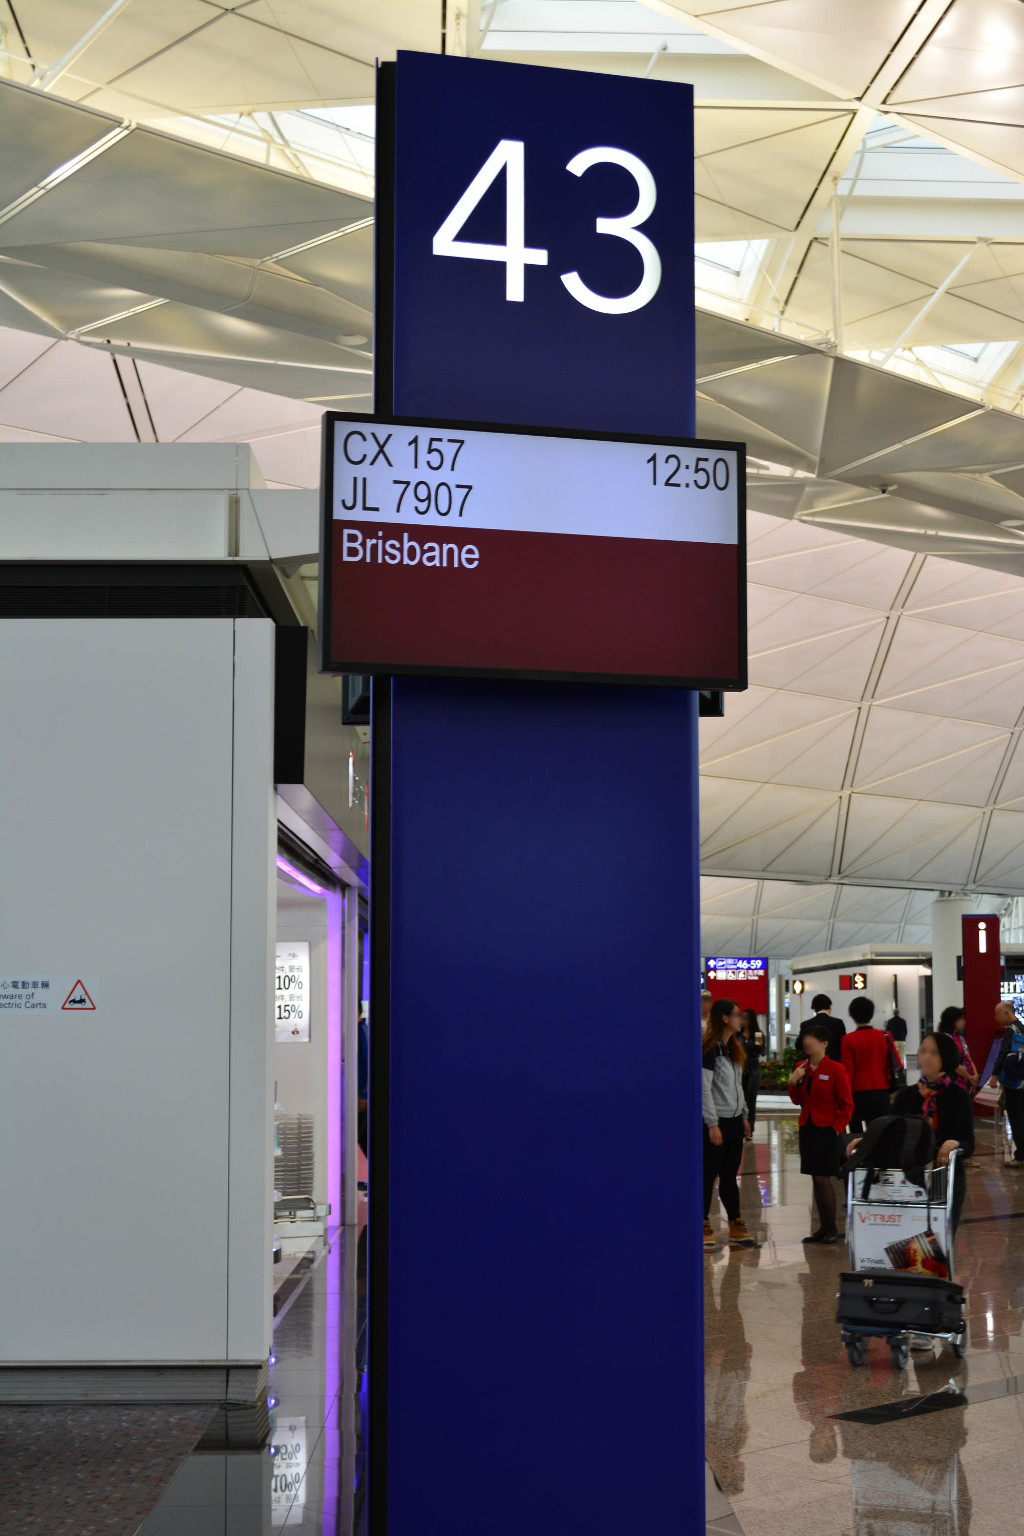 Review of Cathay Pacific flight from Hong Kong to Brisbane in Economy